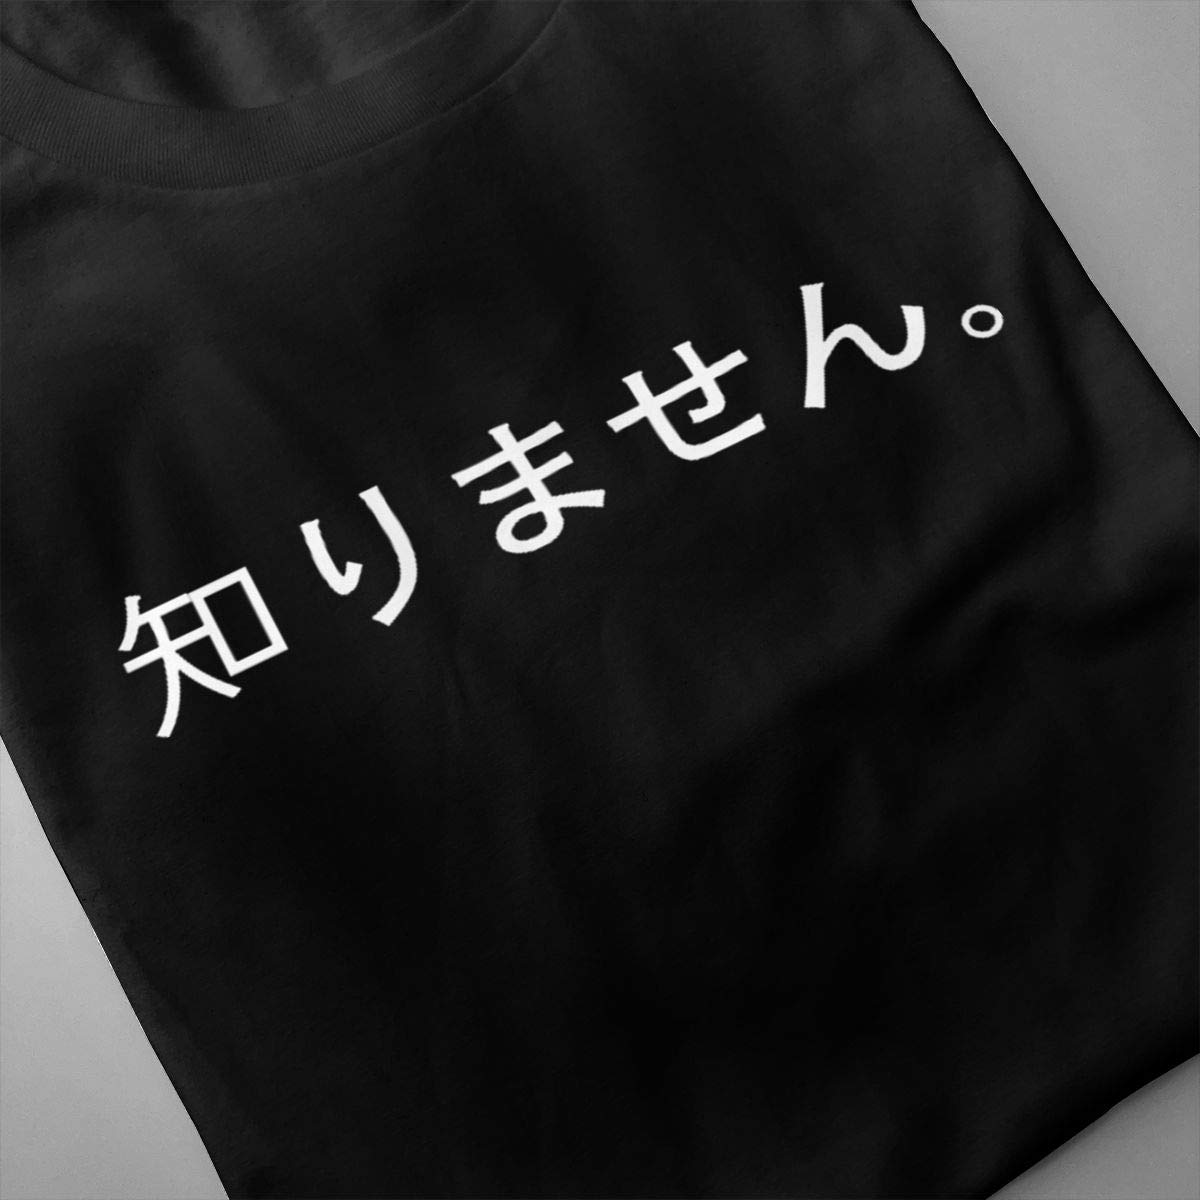 Marsherun Men I Dont Know in Japanese Humor Short Sleeve T Shirts